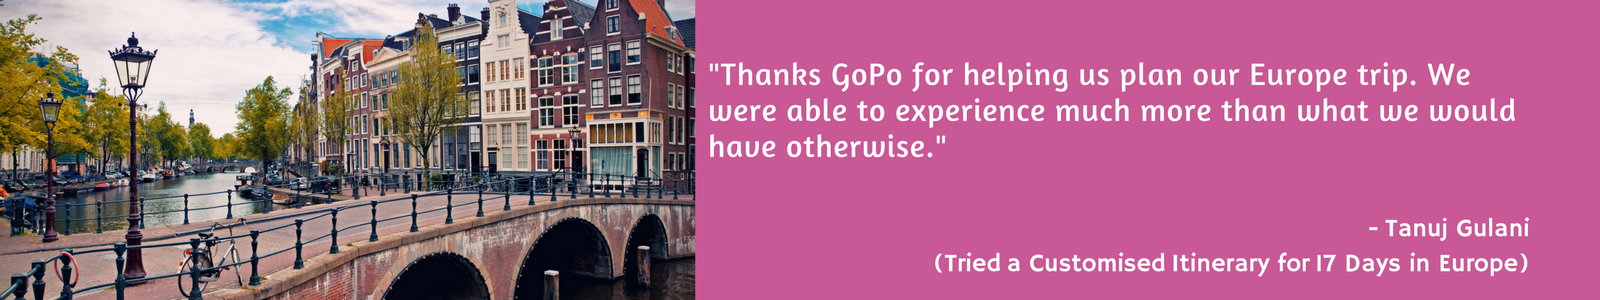 Testimonial from a user for a Customized Itinerary to Europe- on GoPo